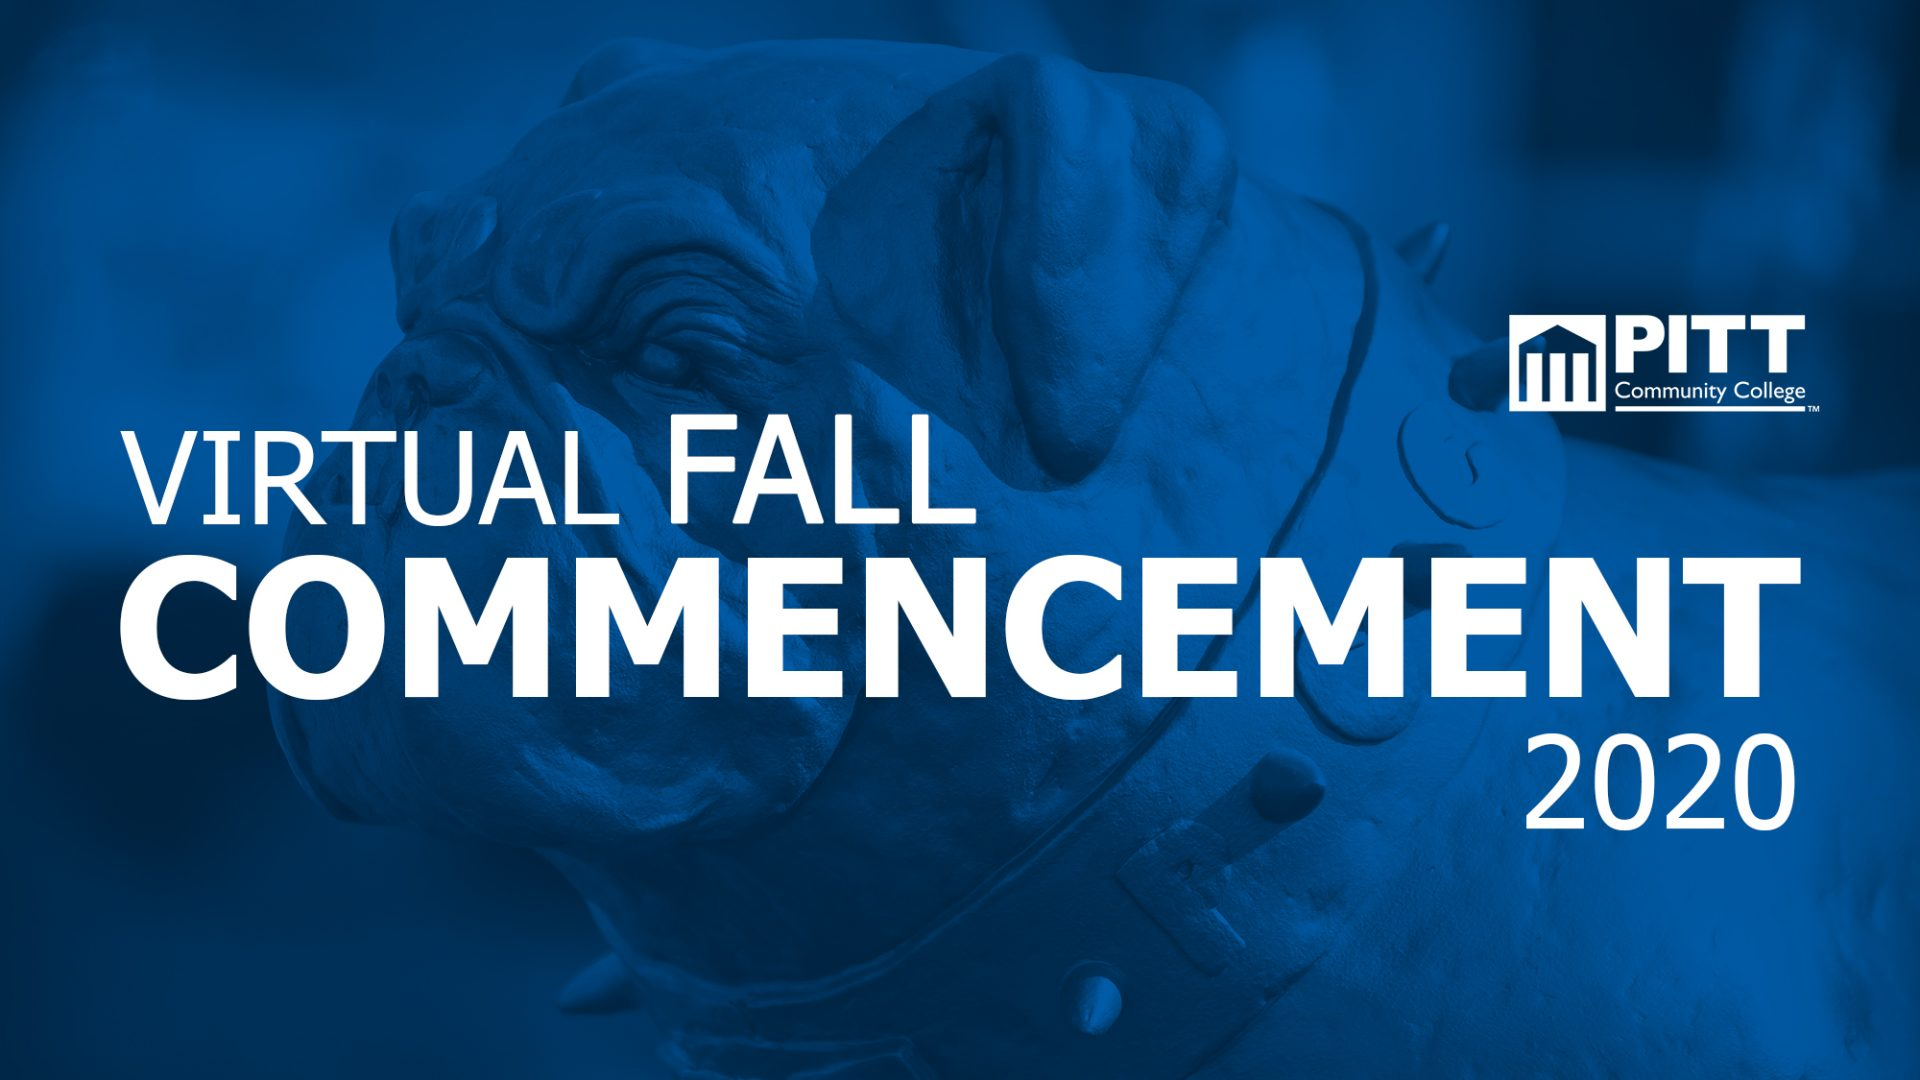 Graphic for Fall 2020 Commencement Ceremony